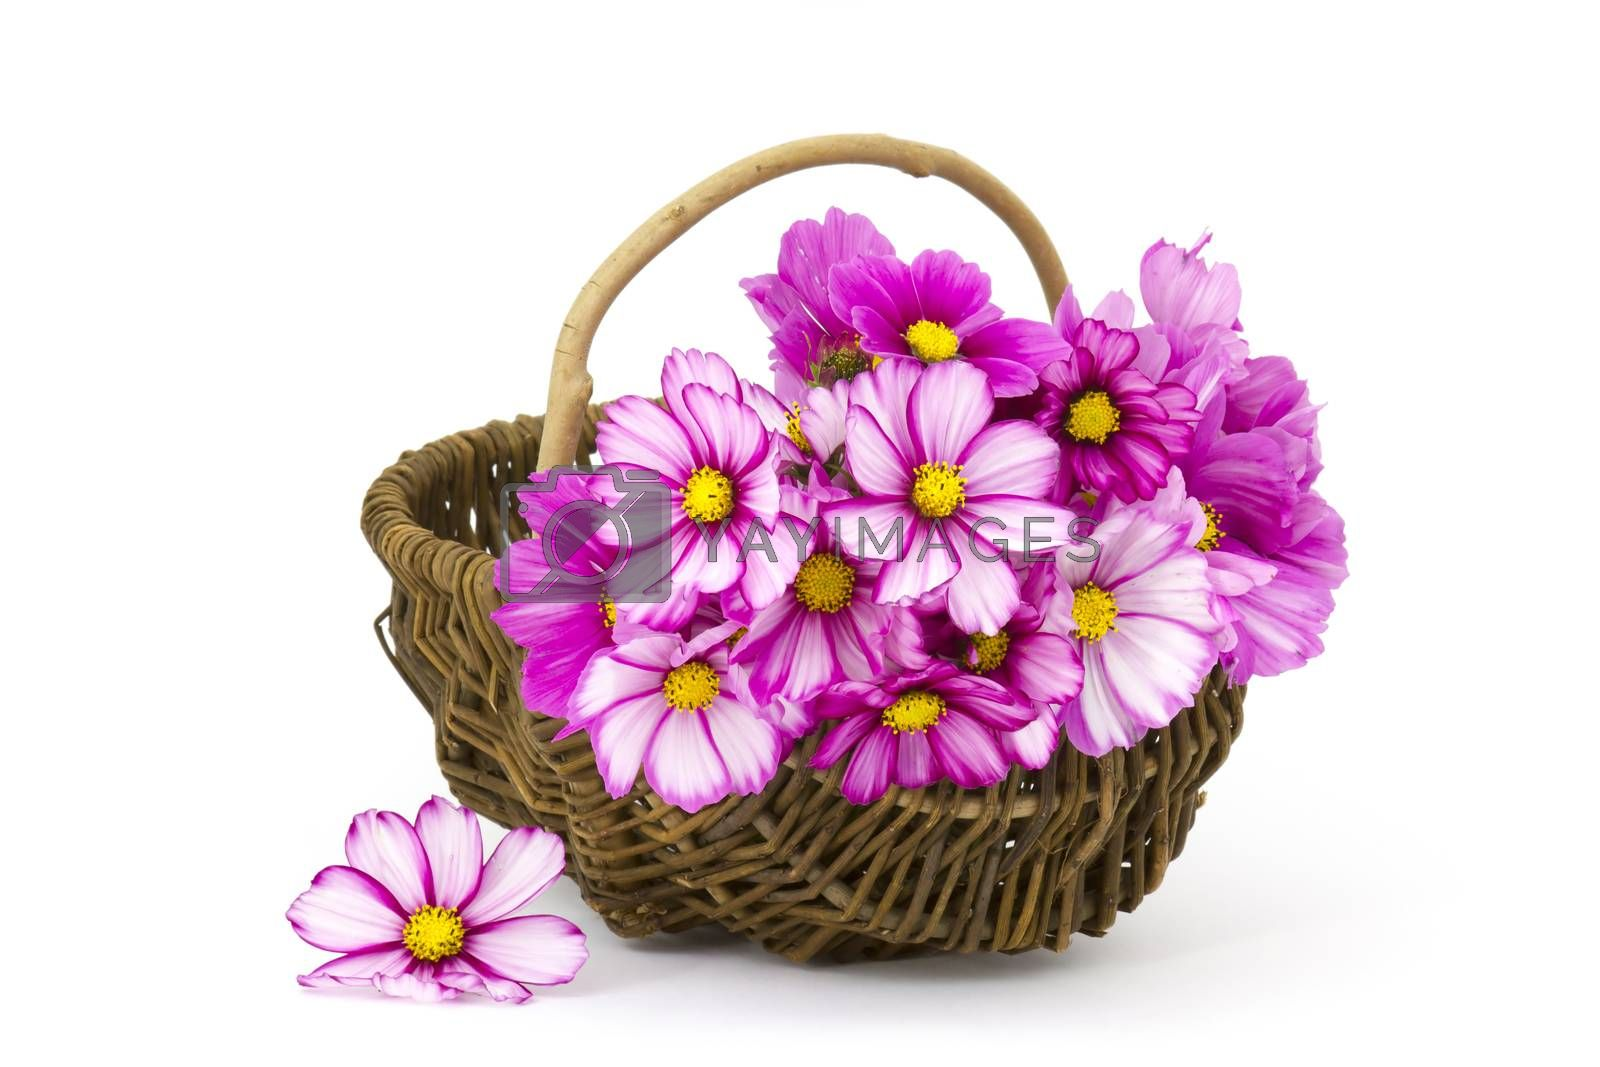 cosmos flowers in a basket on white background